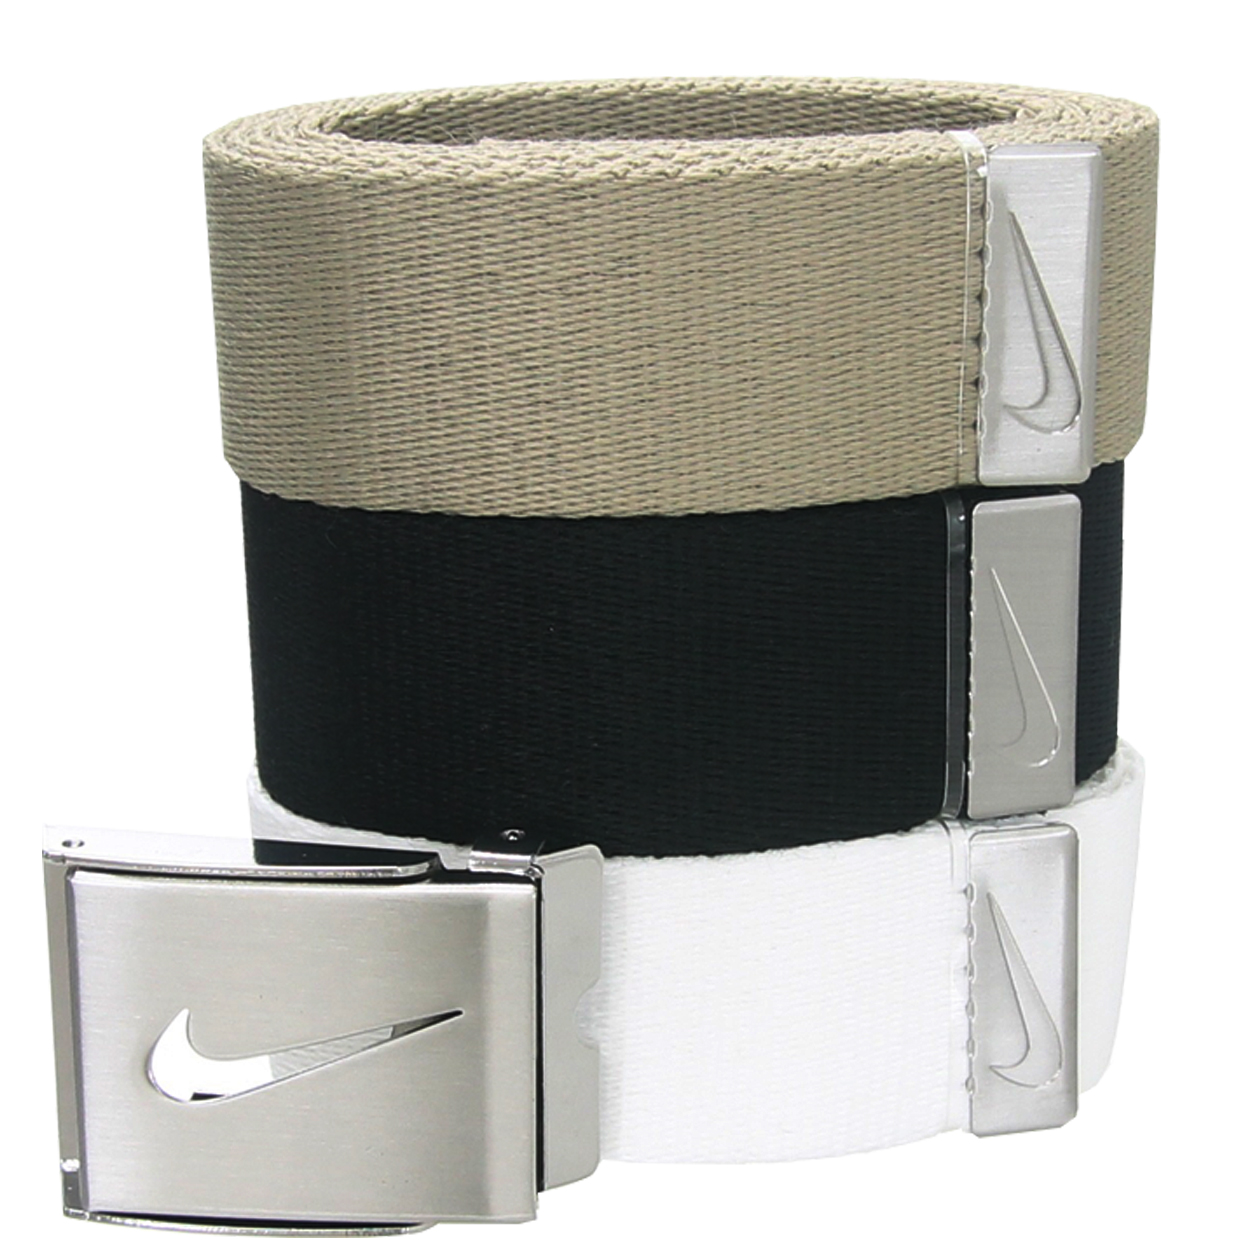 """Nike Golf's 3 in 1 Web Belts feature: Unique clamp buckle allows you to choose which color belt to use that day. Buckle features Nike """"Swoosh"""" logo cutout. Choose the color that best suits your current outfit Belt straps are made of a durable 100% synthetic fiber, and fit up to size 42"""". Why buy three separate belts when the 3 in 1 Web Pack will suffice?"""